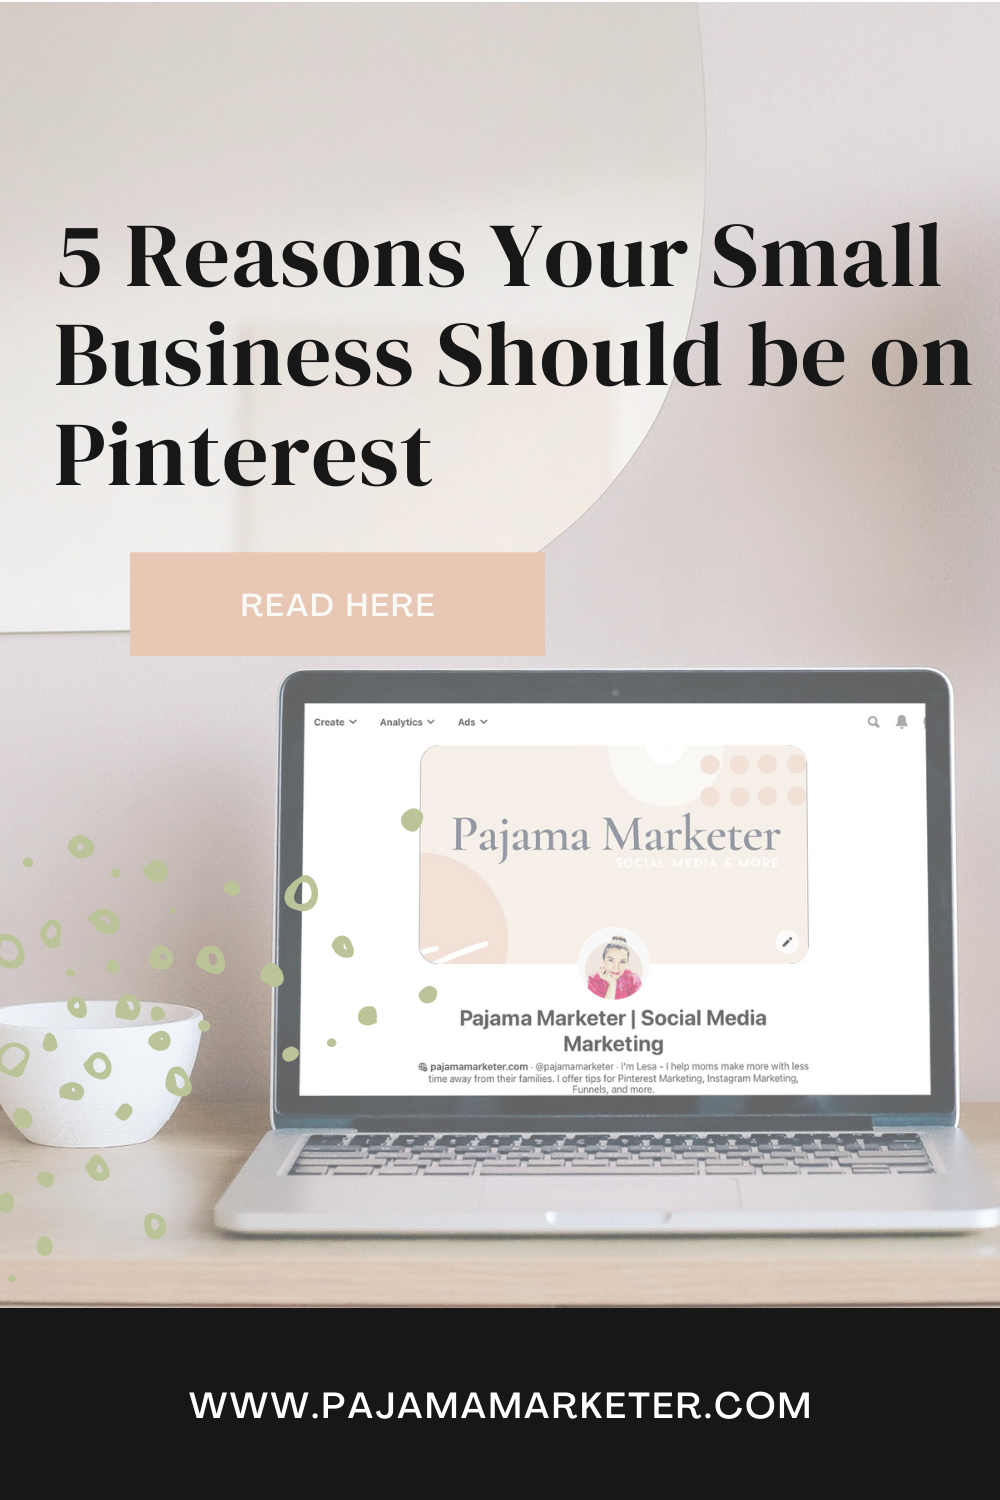 5 reasons your business should be on Pinterest